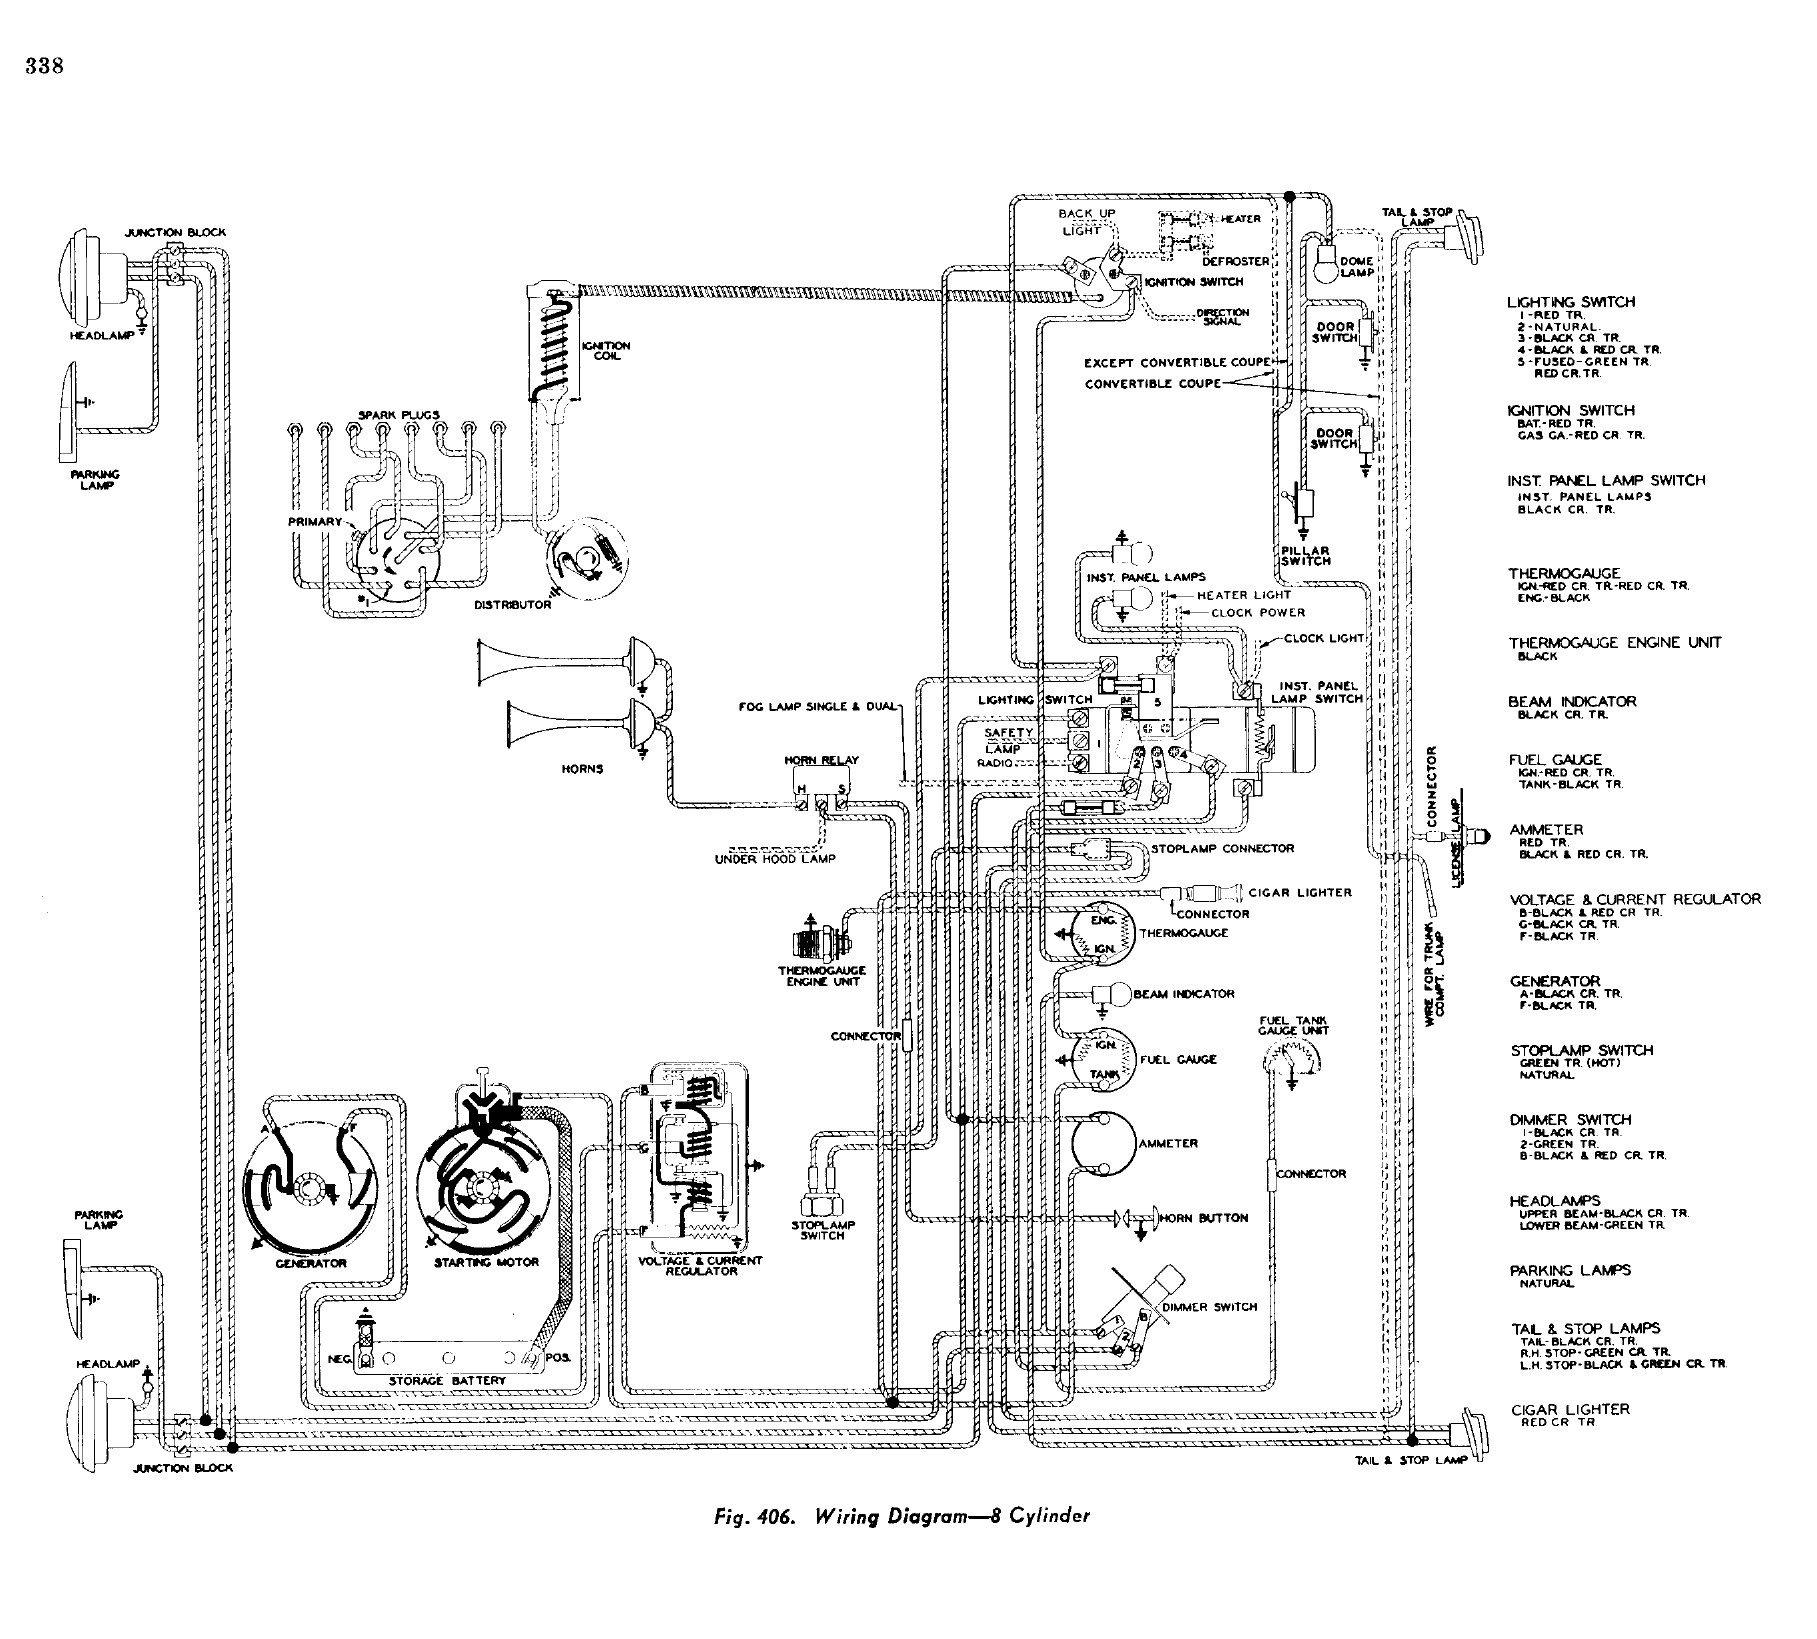 1941 Pontiac Shop Manual- Electrical Page 48 of 50